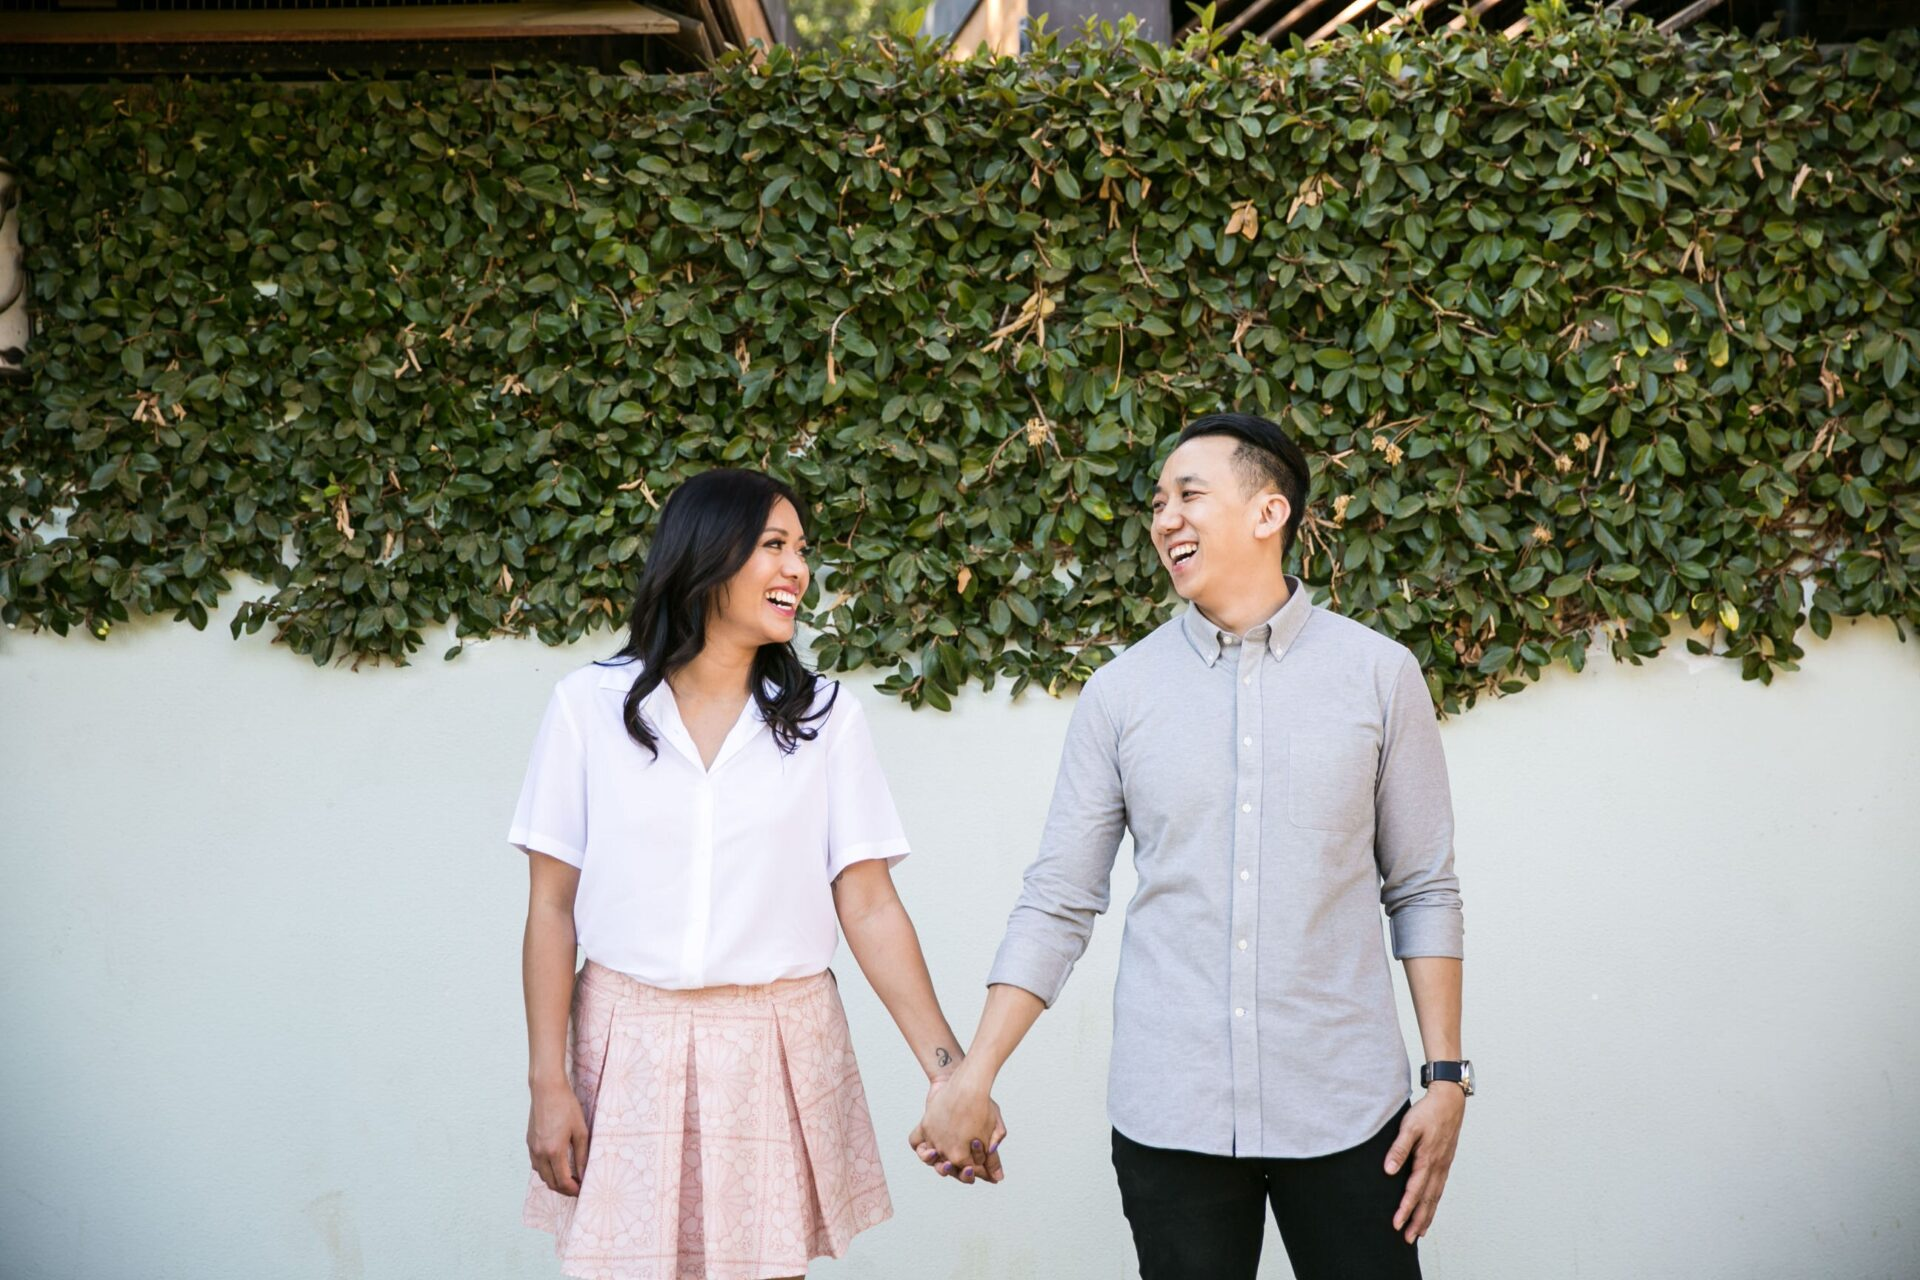 Vista-Hermosa-Park-Engagement-Photography